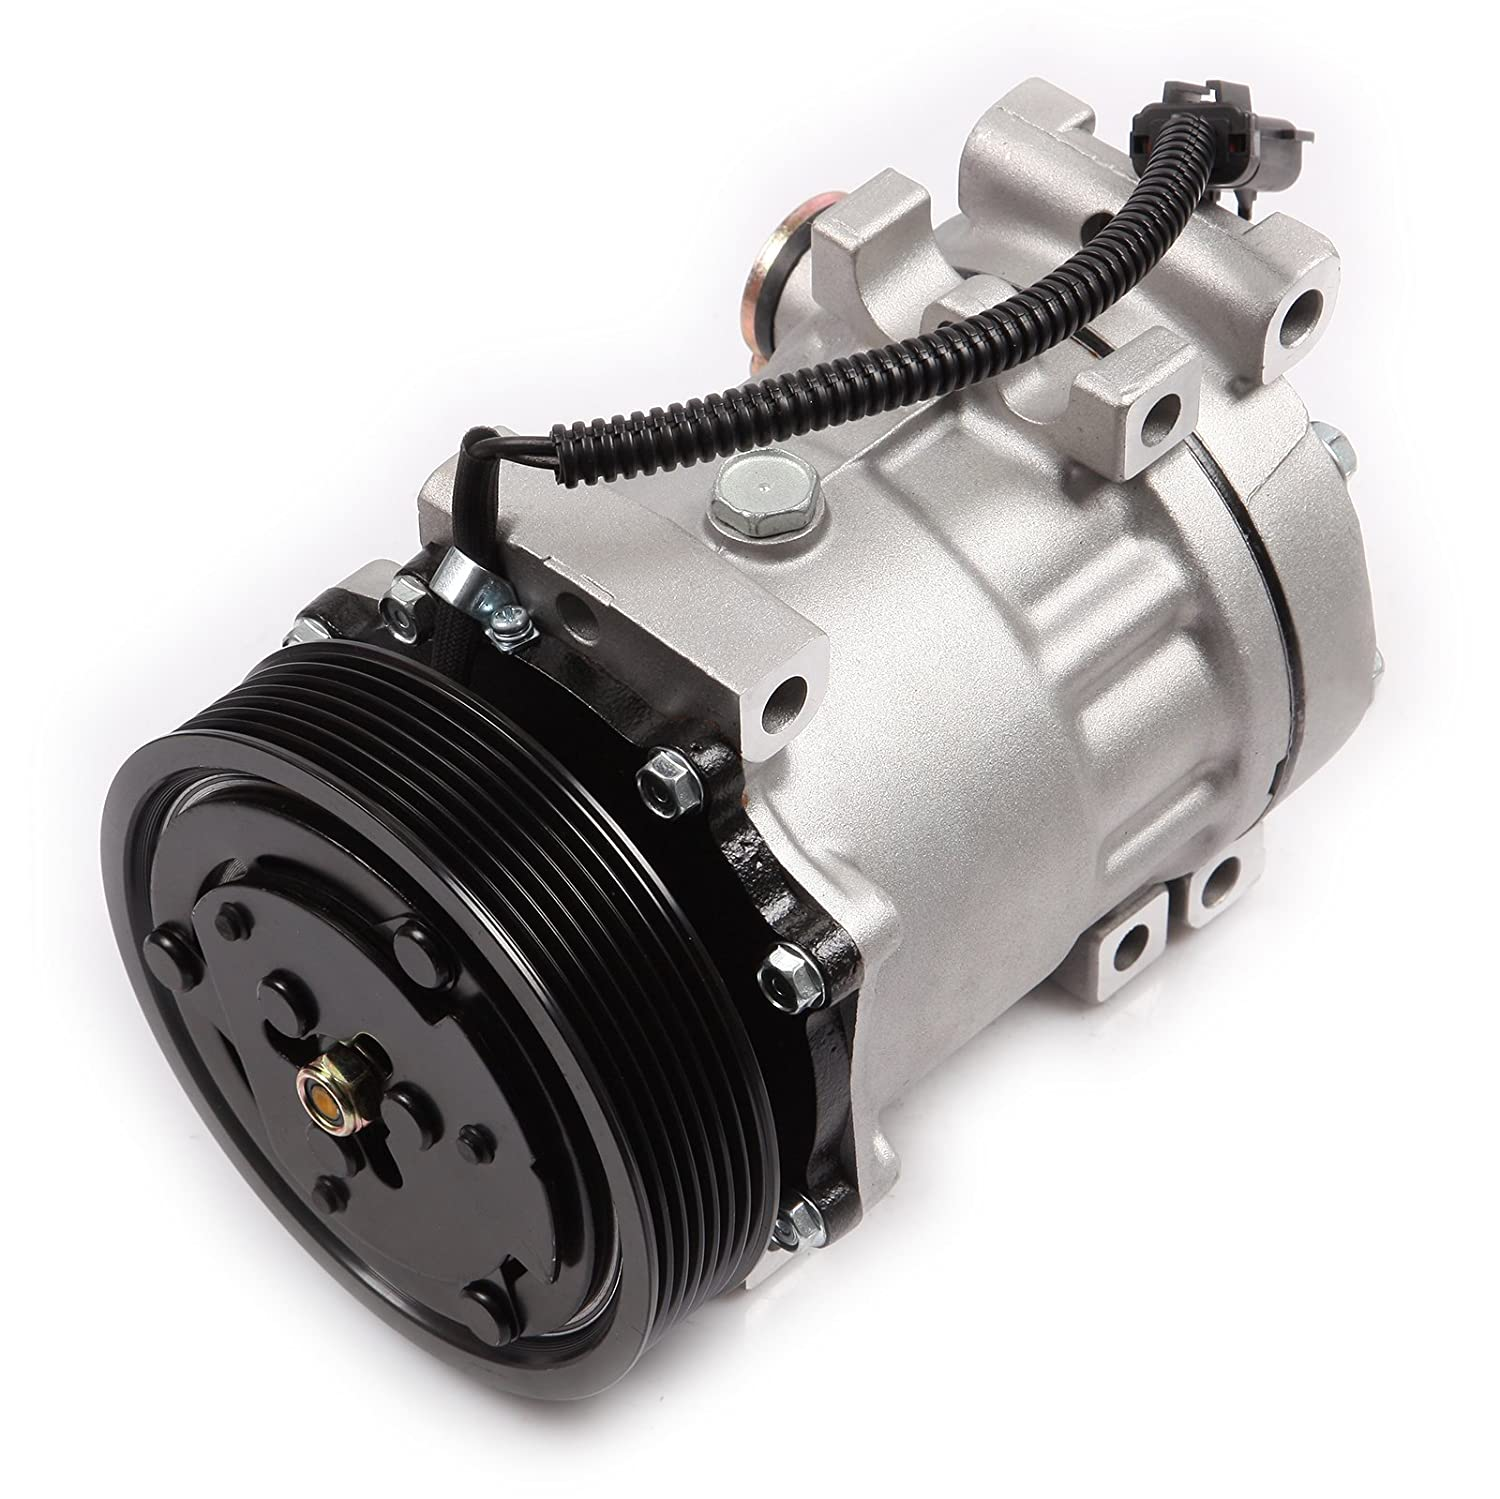 ECCPP A/C Compressor with Clutch fit for 1994-2002 Dodge Dakota Durango Ram 1500 Ramcharger CO 4785C Car Air AC Compressors Kit 104002-5211-1725551